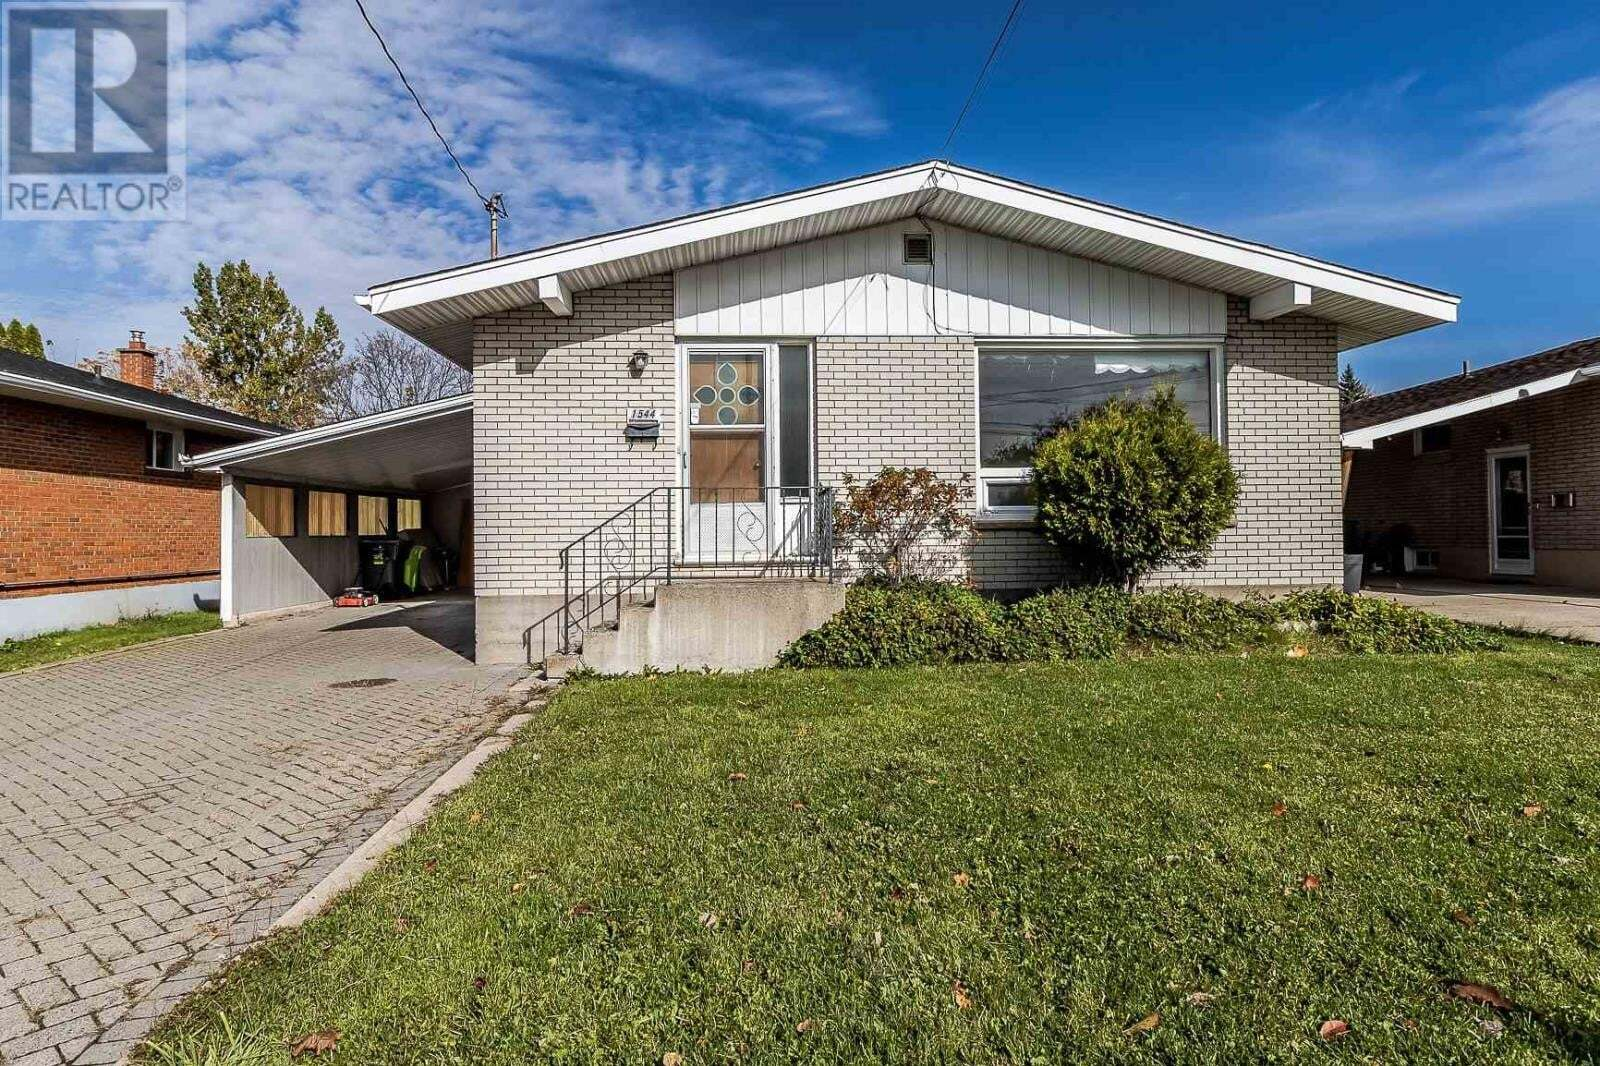 House for sale at 1544 Wellington St E Sault Ste. Marie Ontario - MLS: SM130053